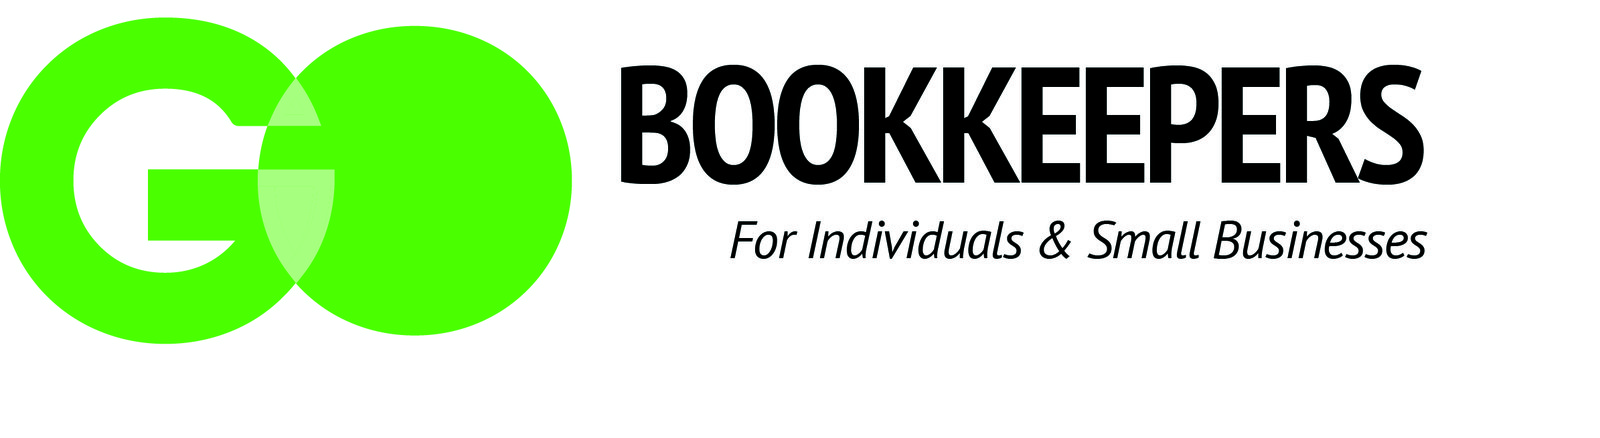 Go Bookkeepers